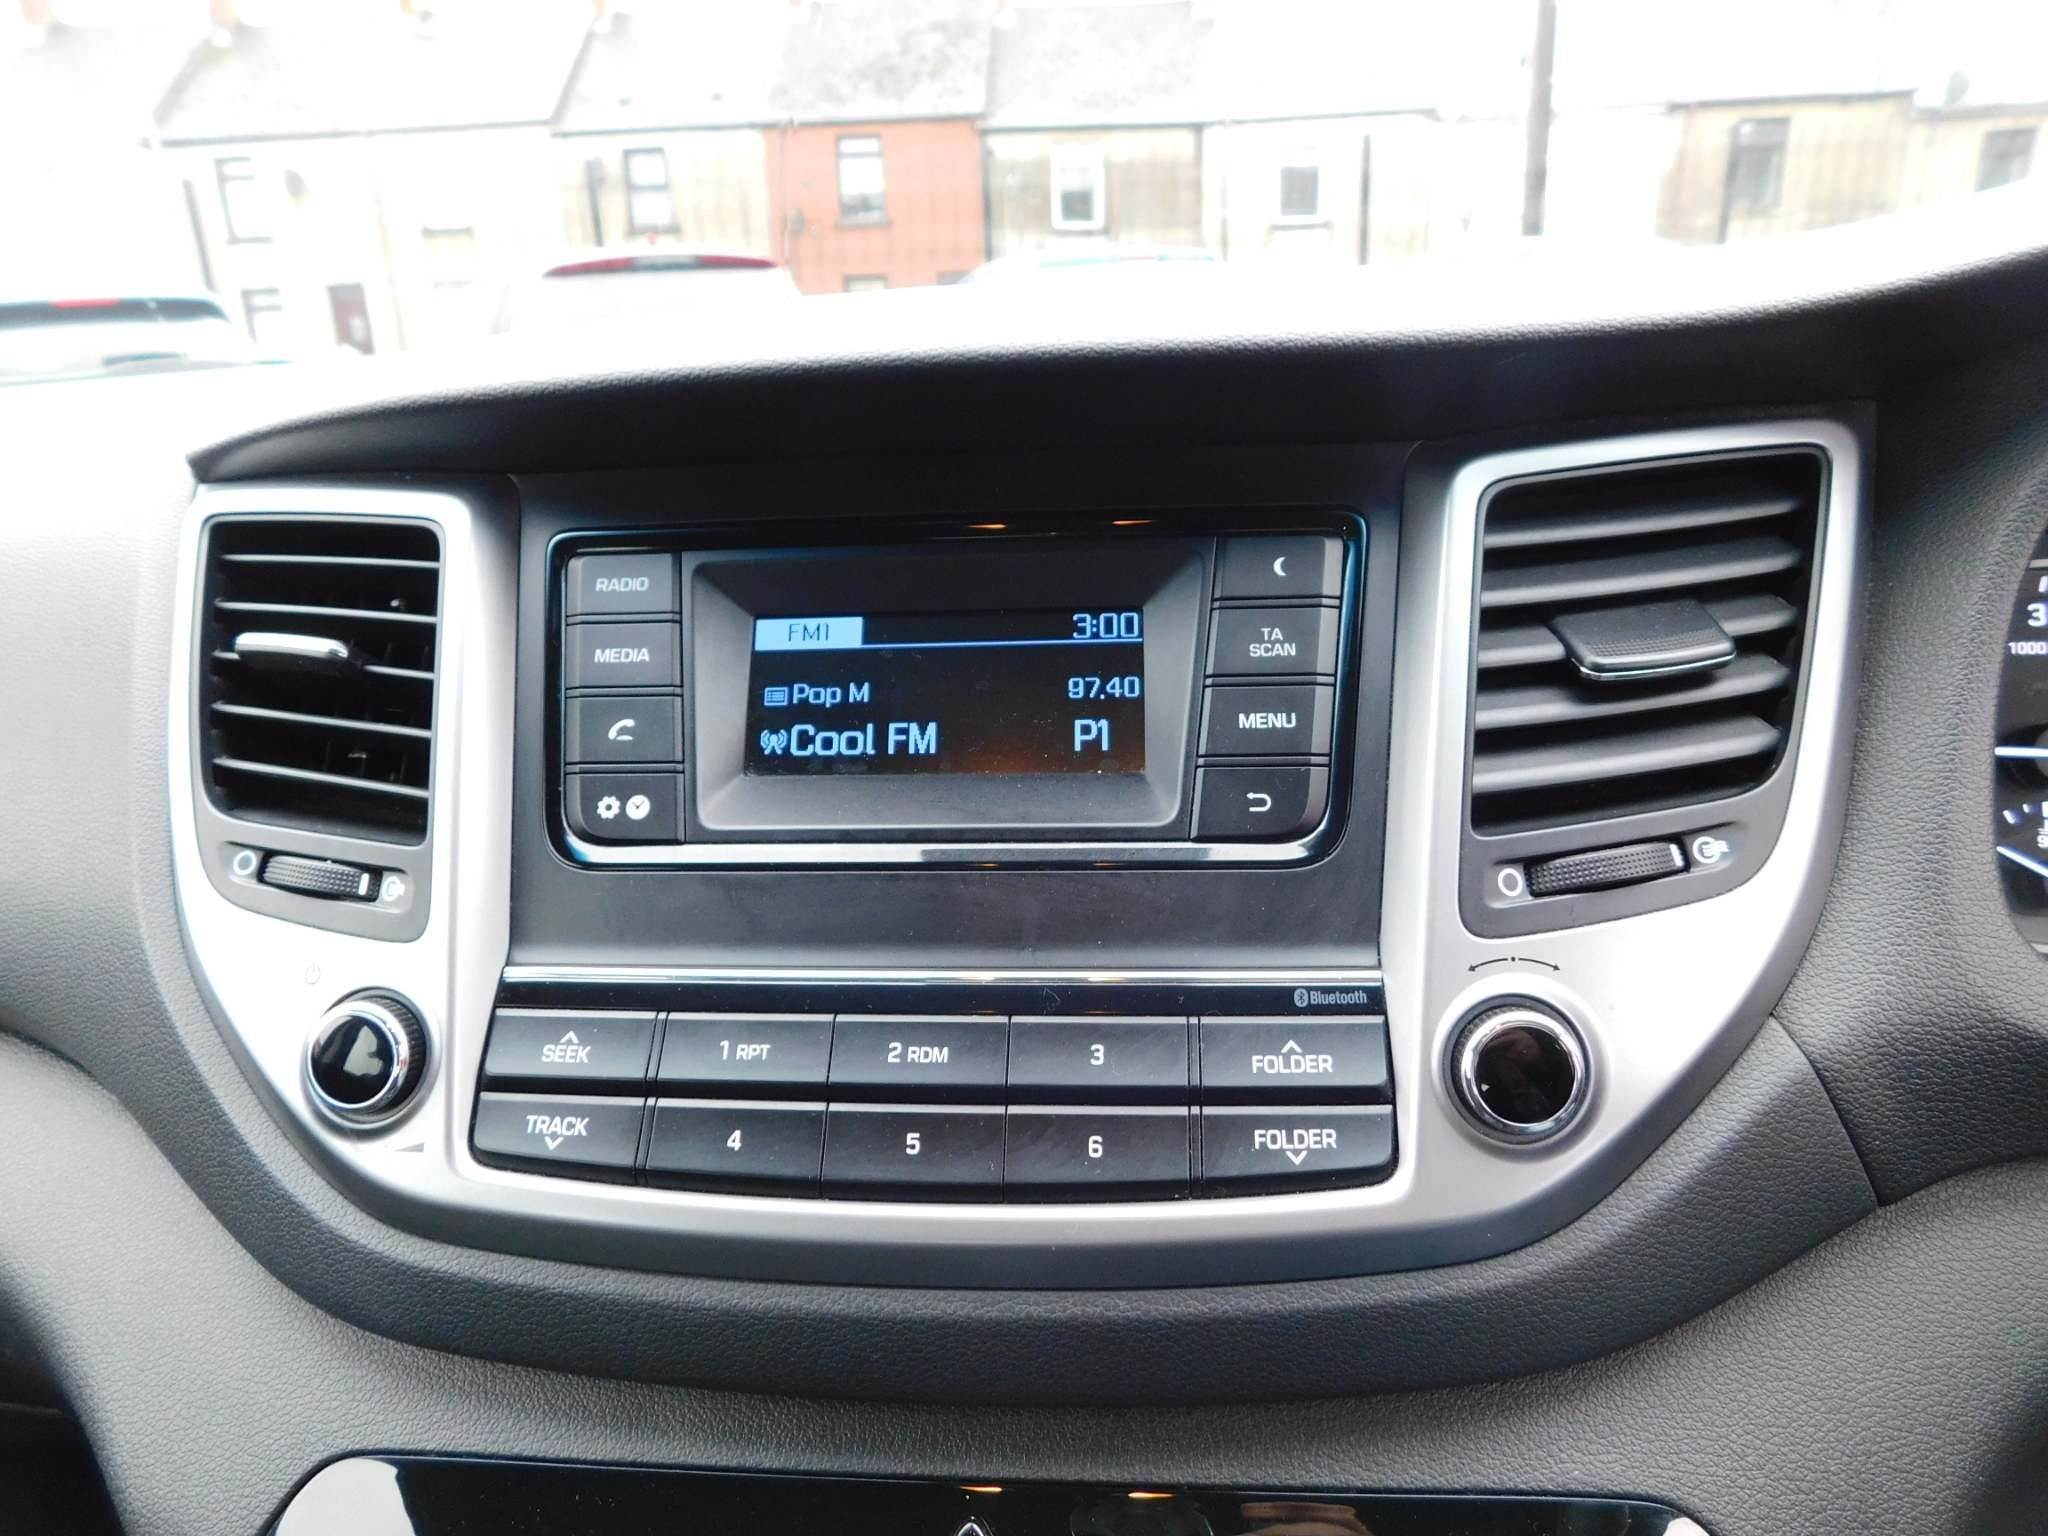 2017 HYUNDAI Tucson 1.7 CRDi Blue Drive S (s/s) Diesel Manual just in – Meadow Cars Carrickfergus full